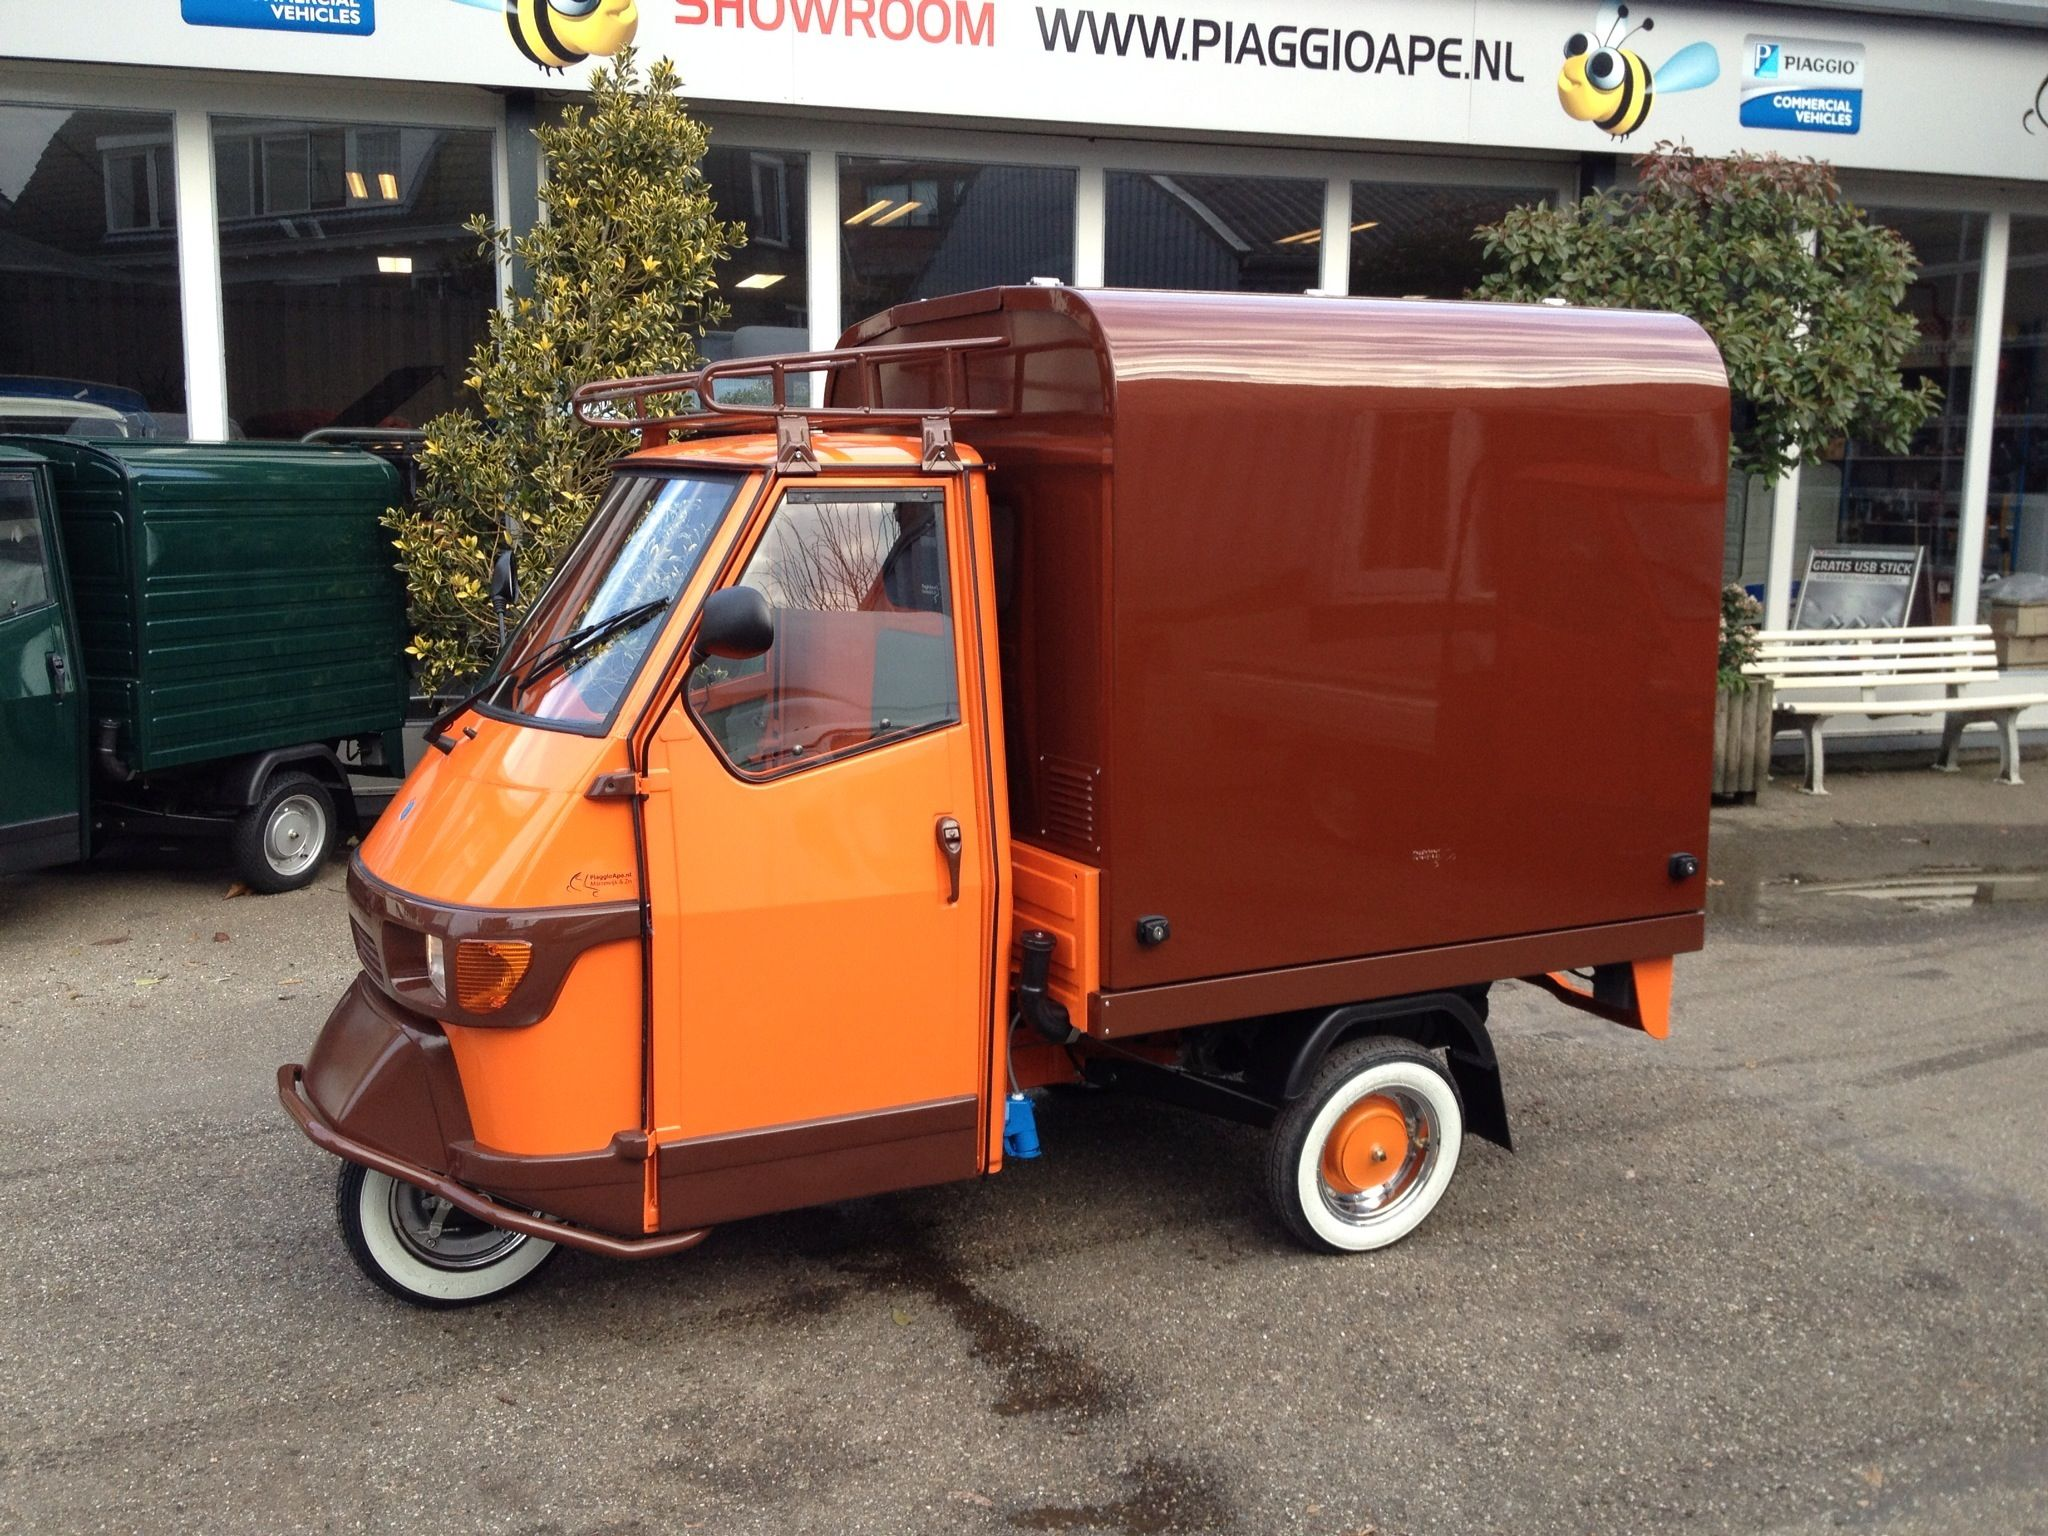 piaggio ape made in holland piaggio ape with salesunit. Black Bedroom Furniture Sets. Home Design Ideas